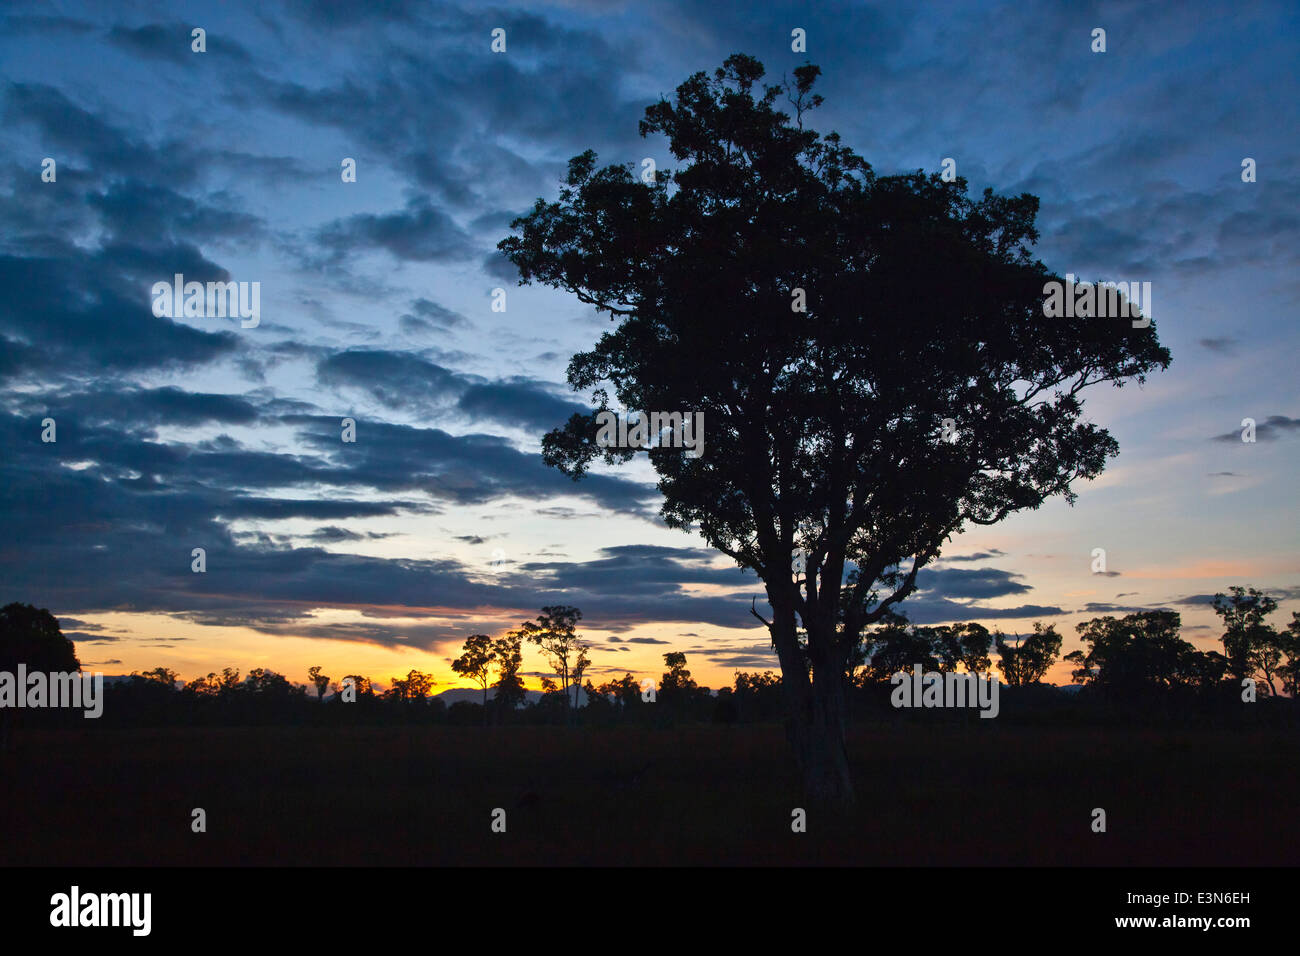 Sunrise silhouettes trees in the unique savanna ecosystem of KOH PHRA THONG ISLAND, THAILAND - Stock Image